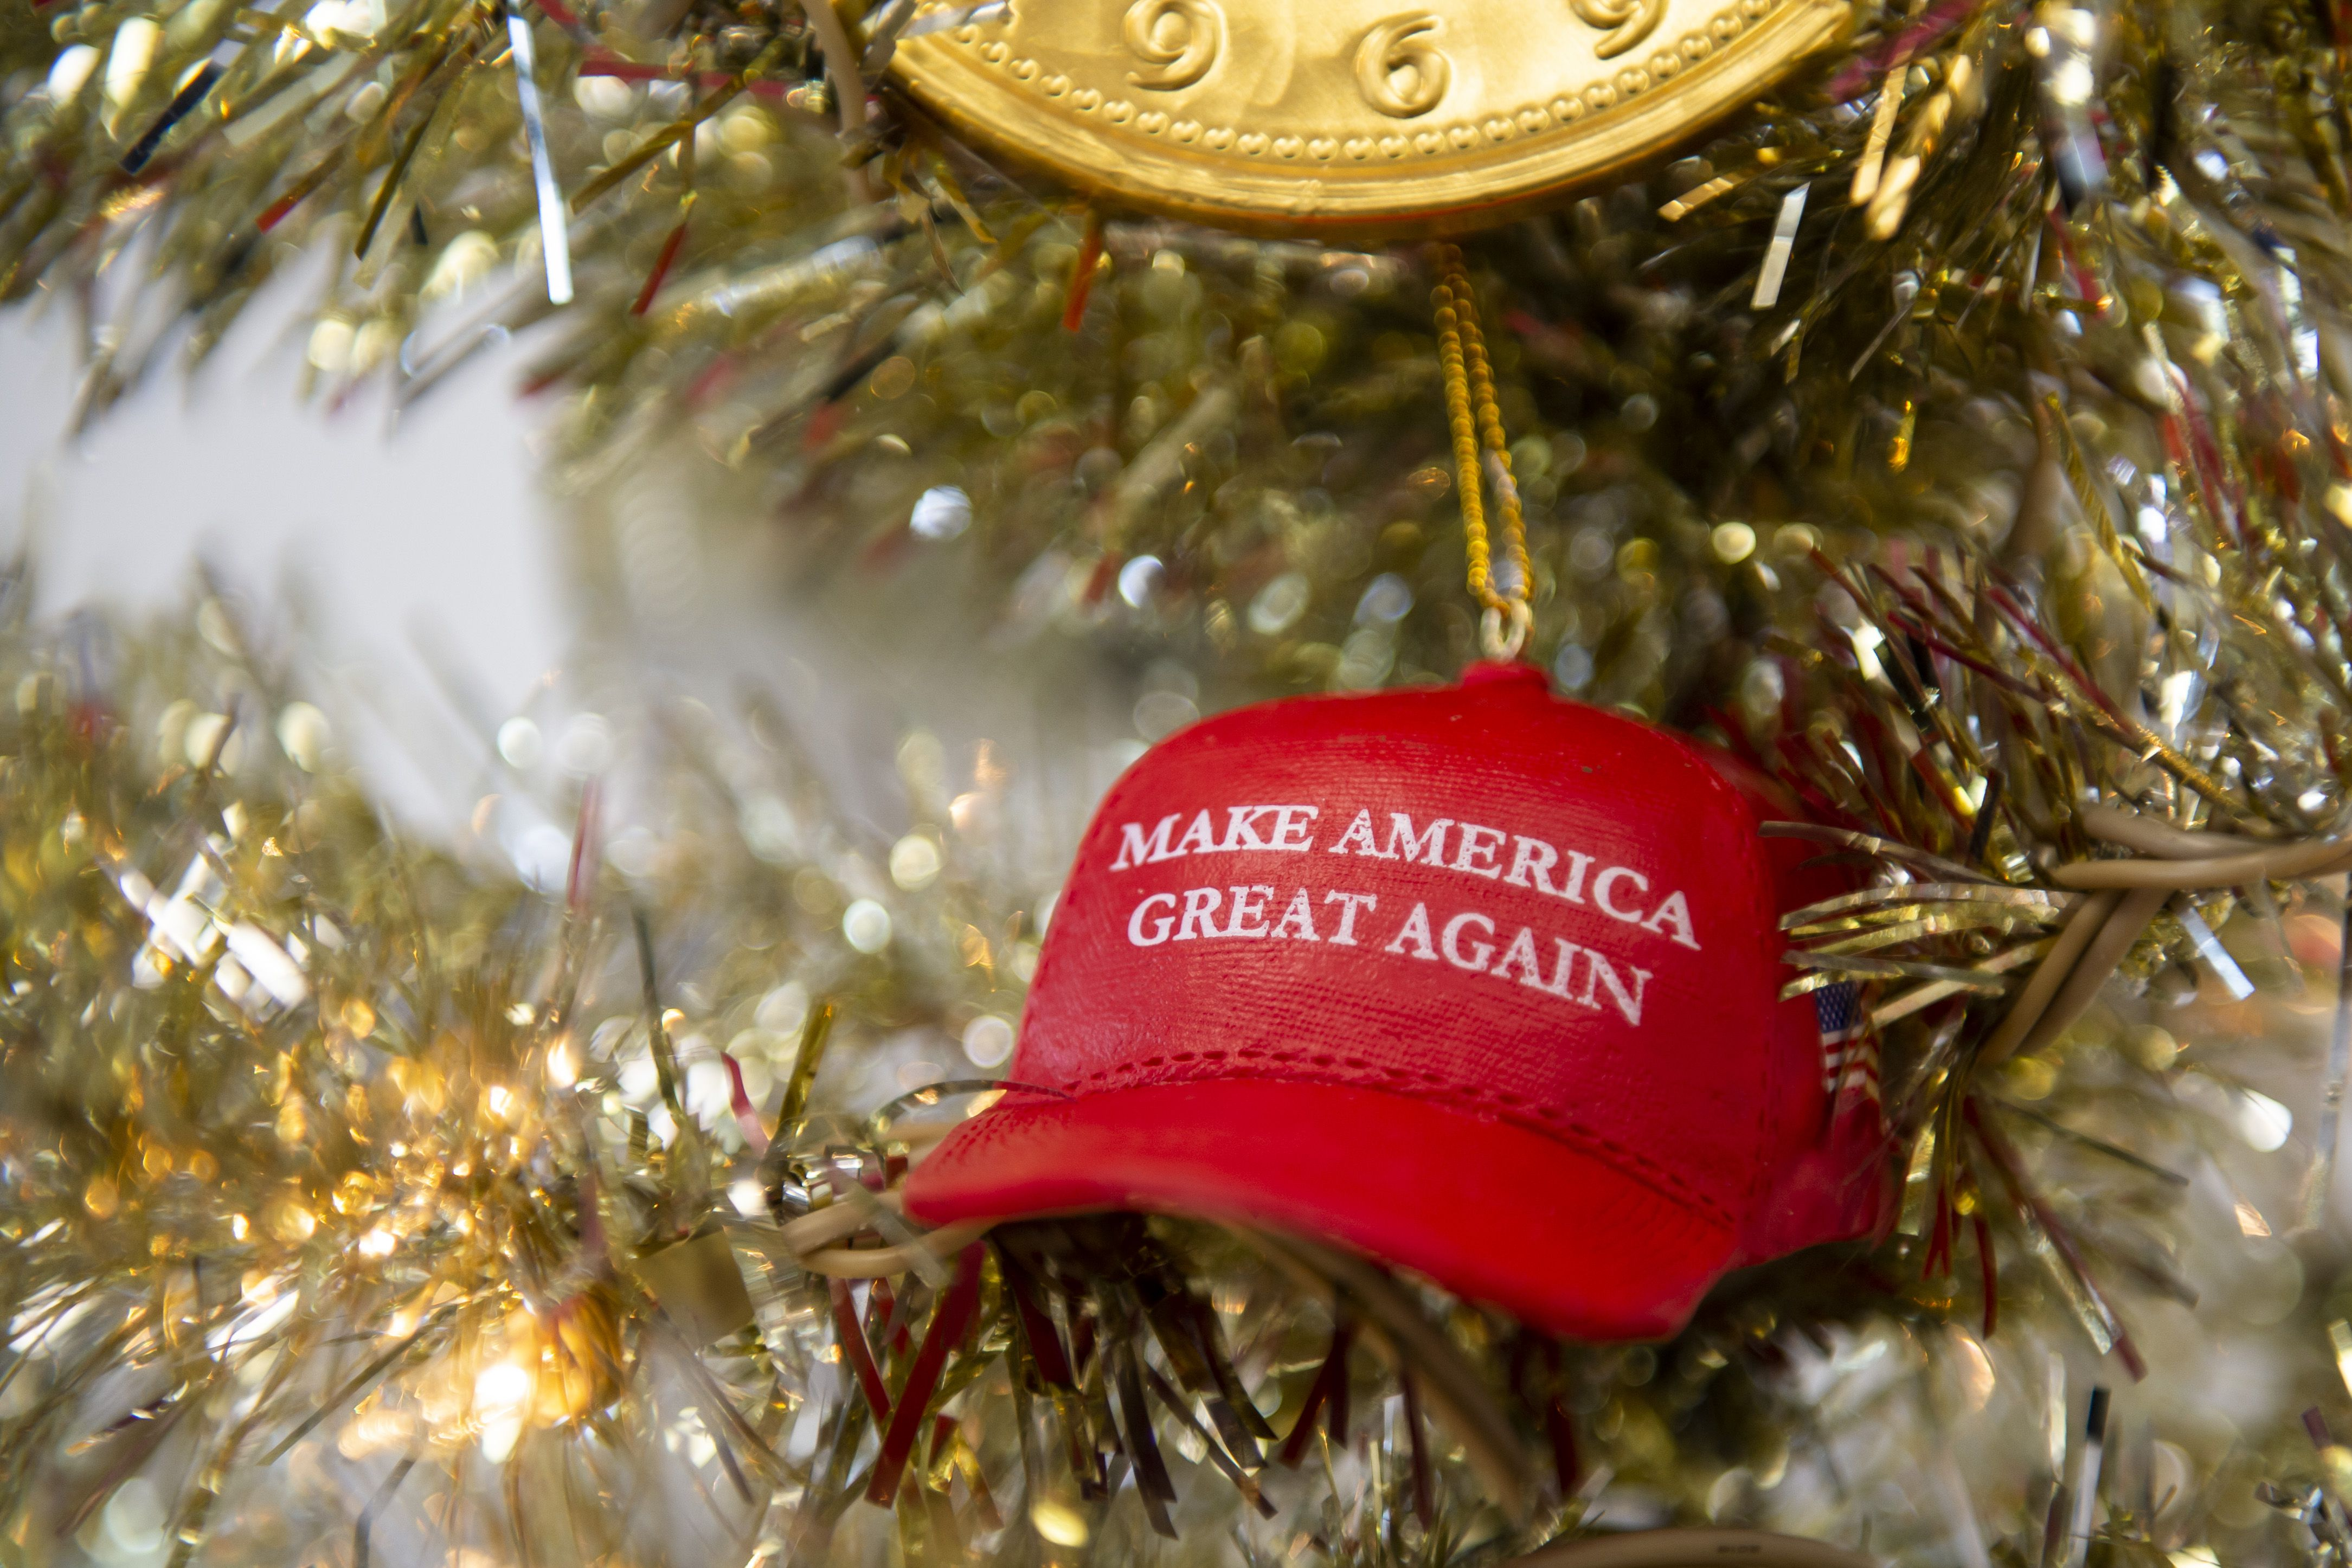 Trump 2020 Christmas Ornament Collection Trump Christmas Shoppe comes to Saginaw's Bay Plaza   mlive.com